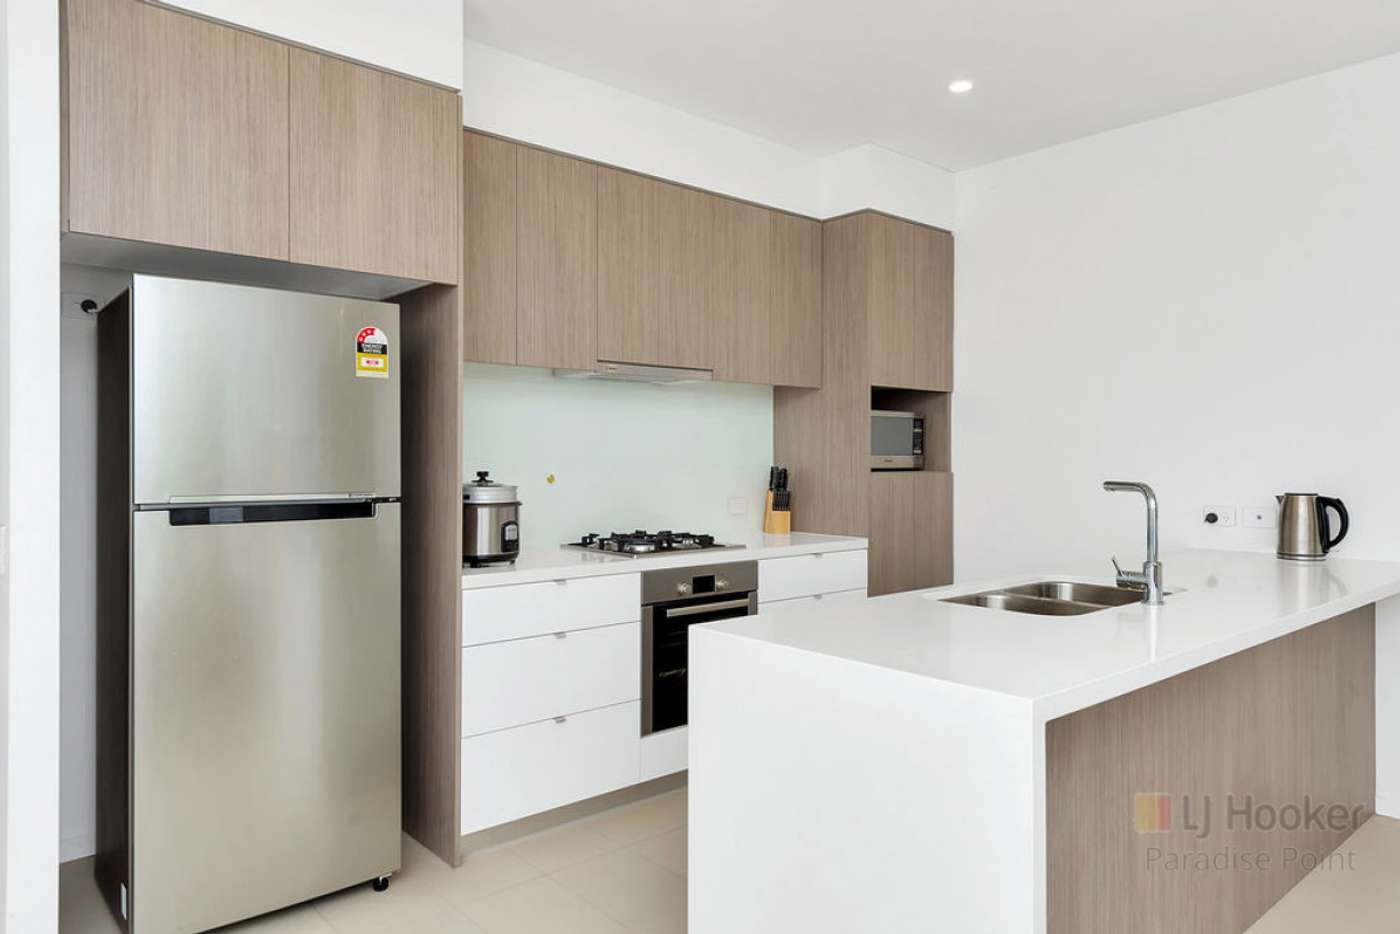 Main view of Homely townhouse listing, 4 Sorrento Street, Hope Island QLD 4212